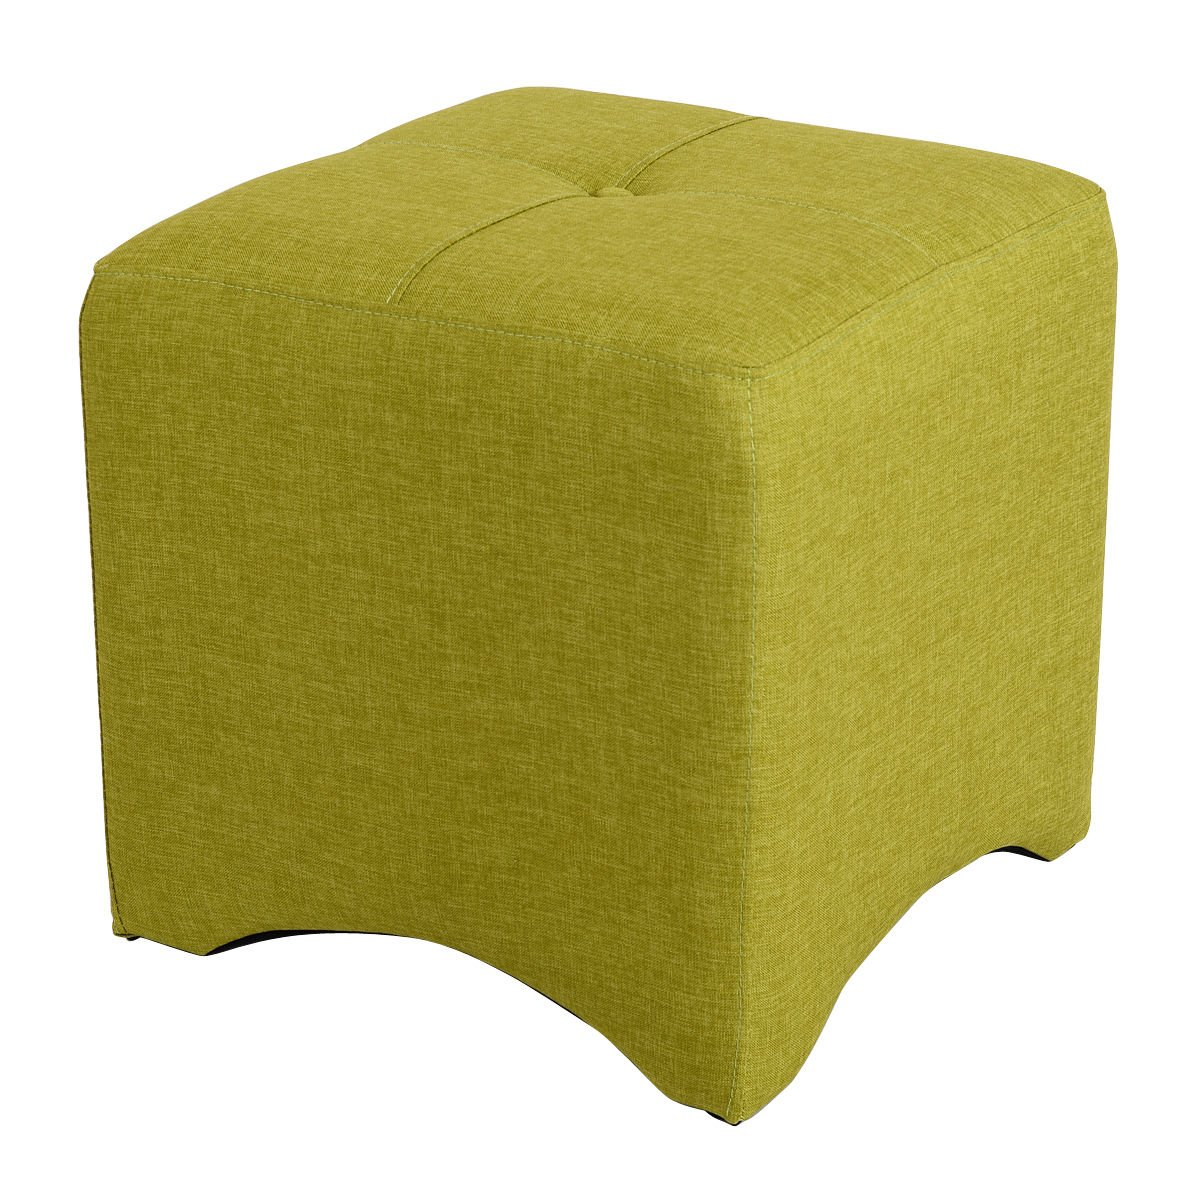 Cube Ottoman Foot Stool Square Foot Rest Seating Wood Frame Furniture Green